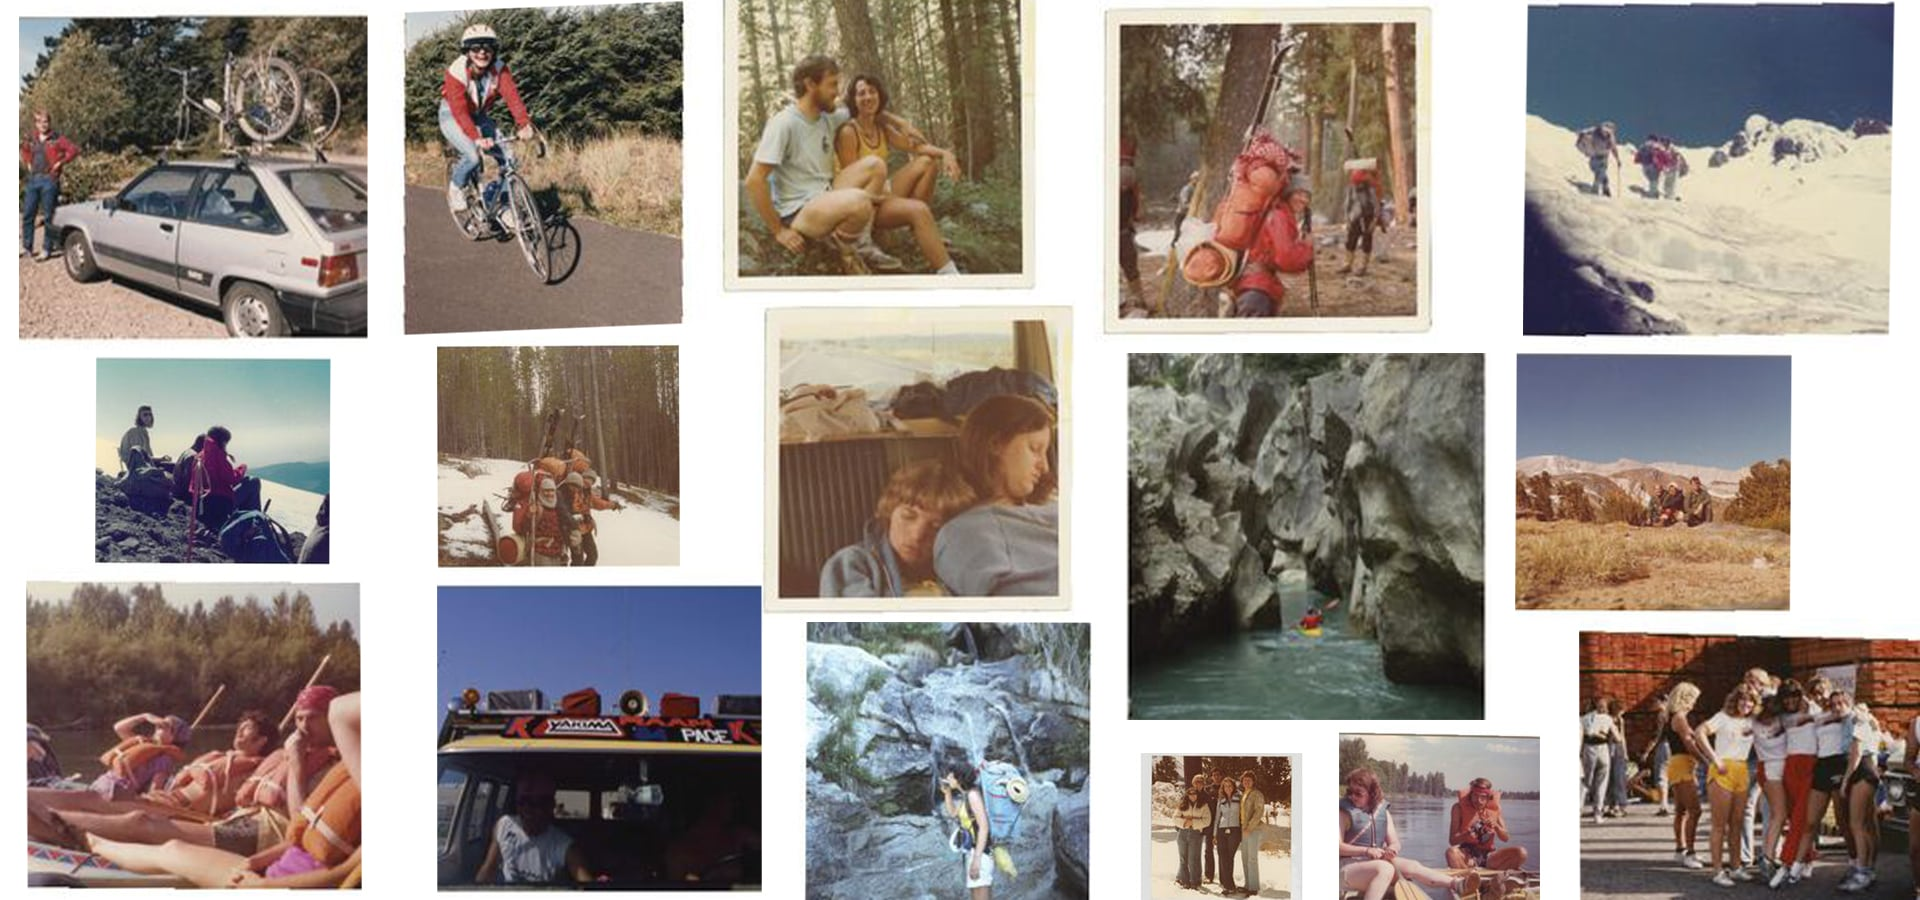 Yakima adventure products heritage collage